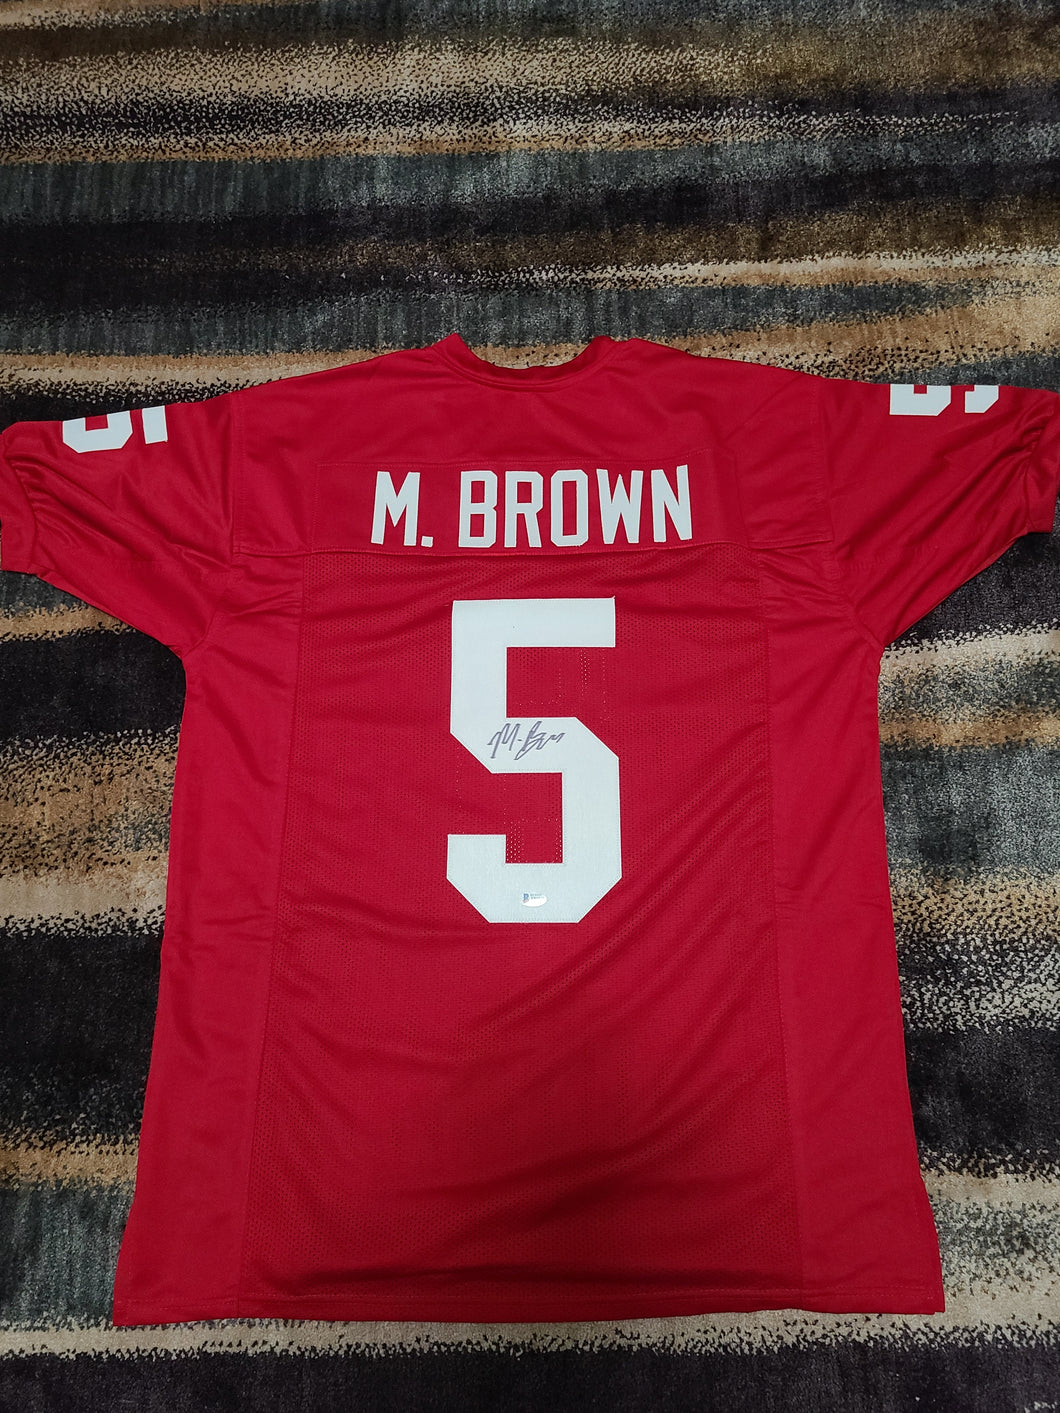 Marquise Brown Signed Custom Oklahoma Sooners Jersey (Beckett Cert.)